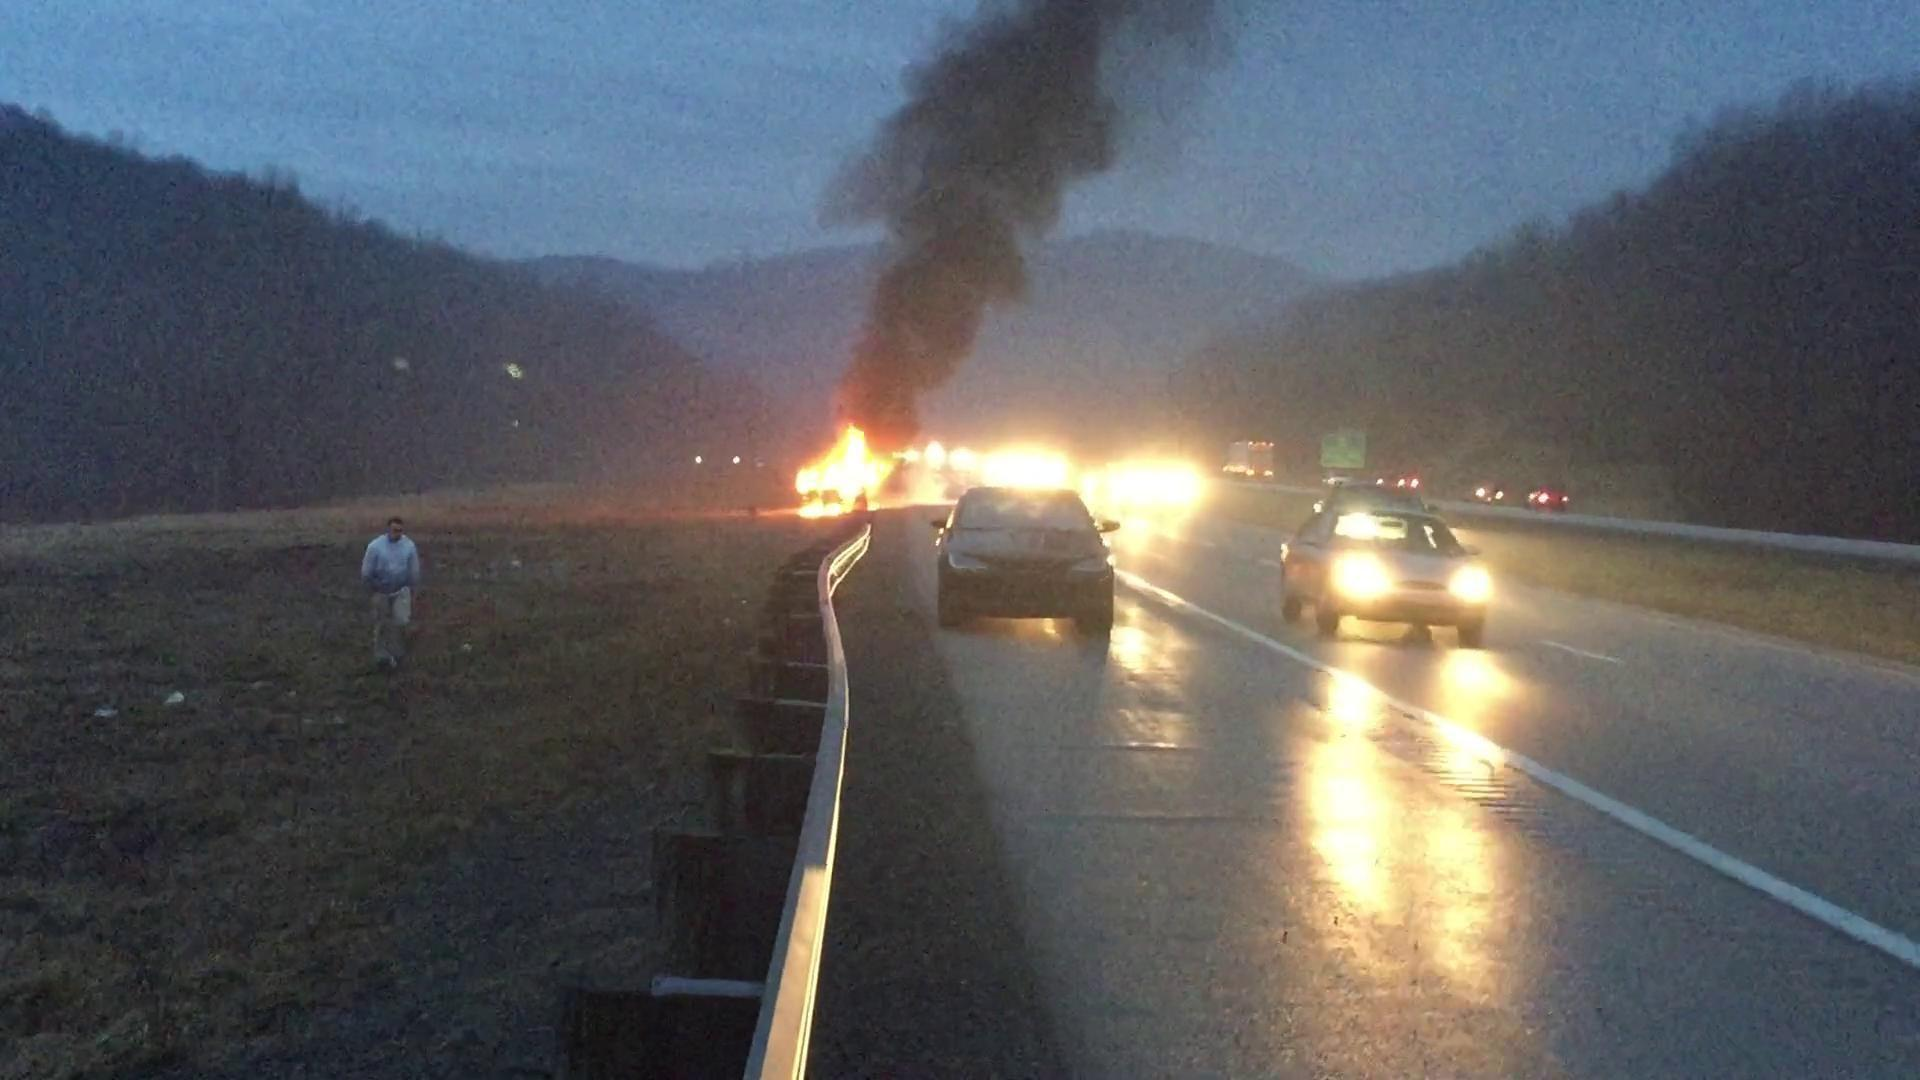 Car catches fire along I-79 in Clarksburg, WV, Sunday evening